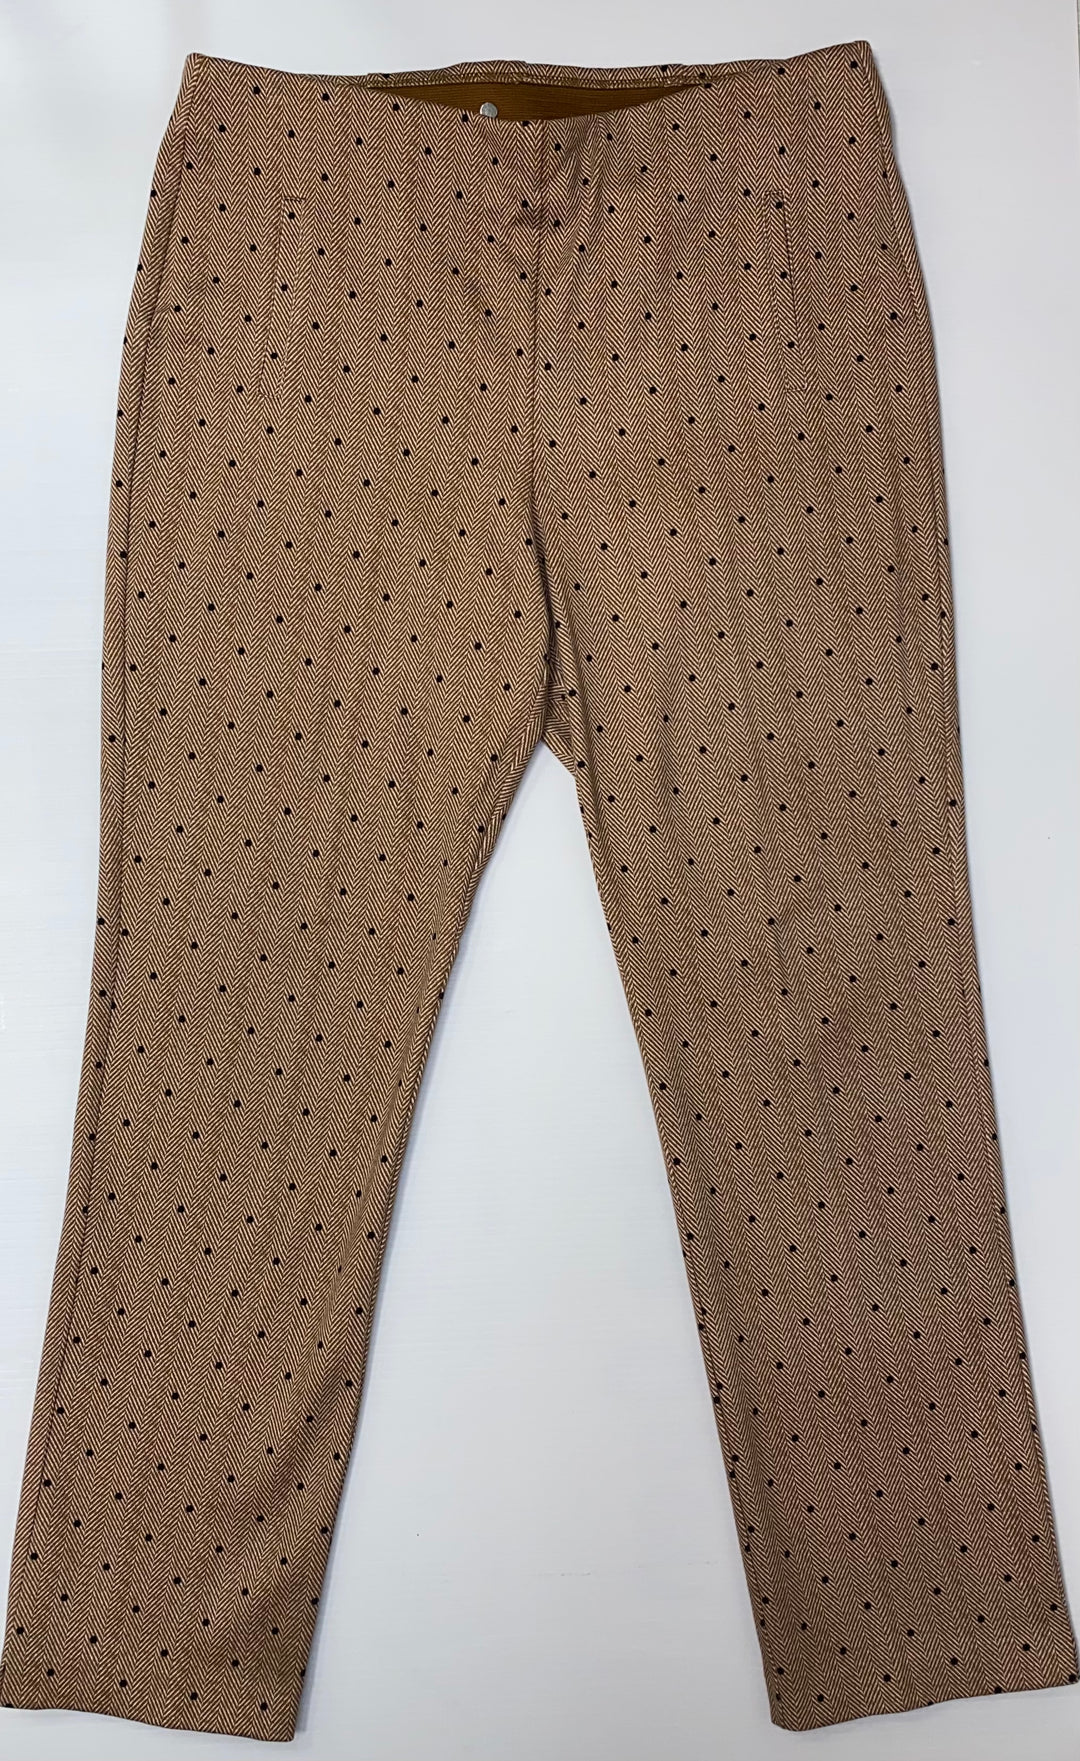 Primary Photo - BRAND: CHICOS <BR>STYLE: PANTS <BR>COLOR: POLKADOT <BR>SIZE: 14 <BR>OTHER INFO: SIZE 2.5 CHICOS- BROWN WHITE BLACK <BR>SKU: 245-245199-8396